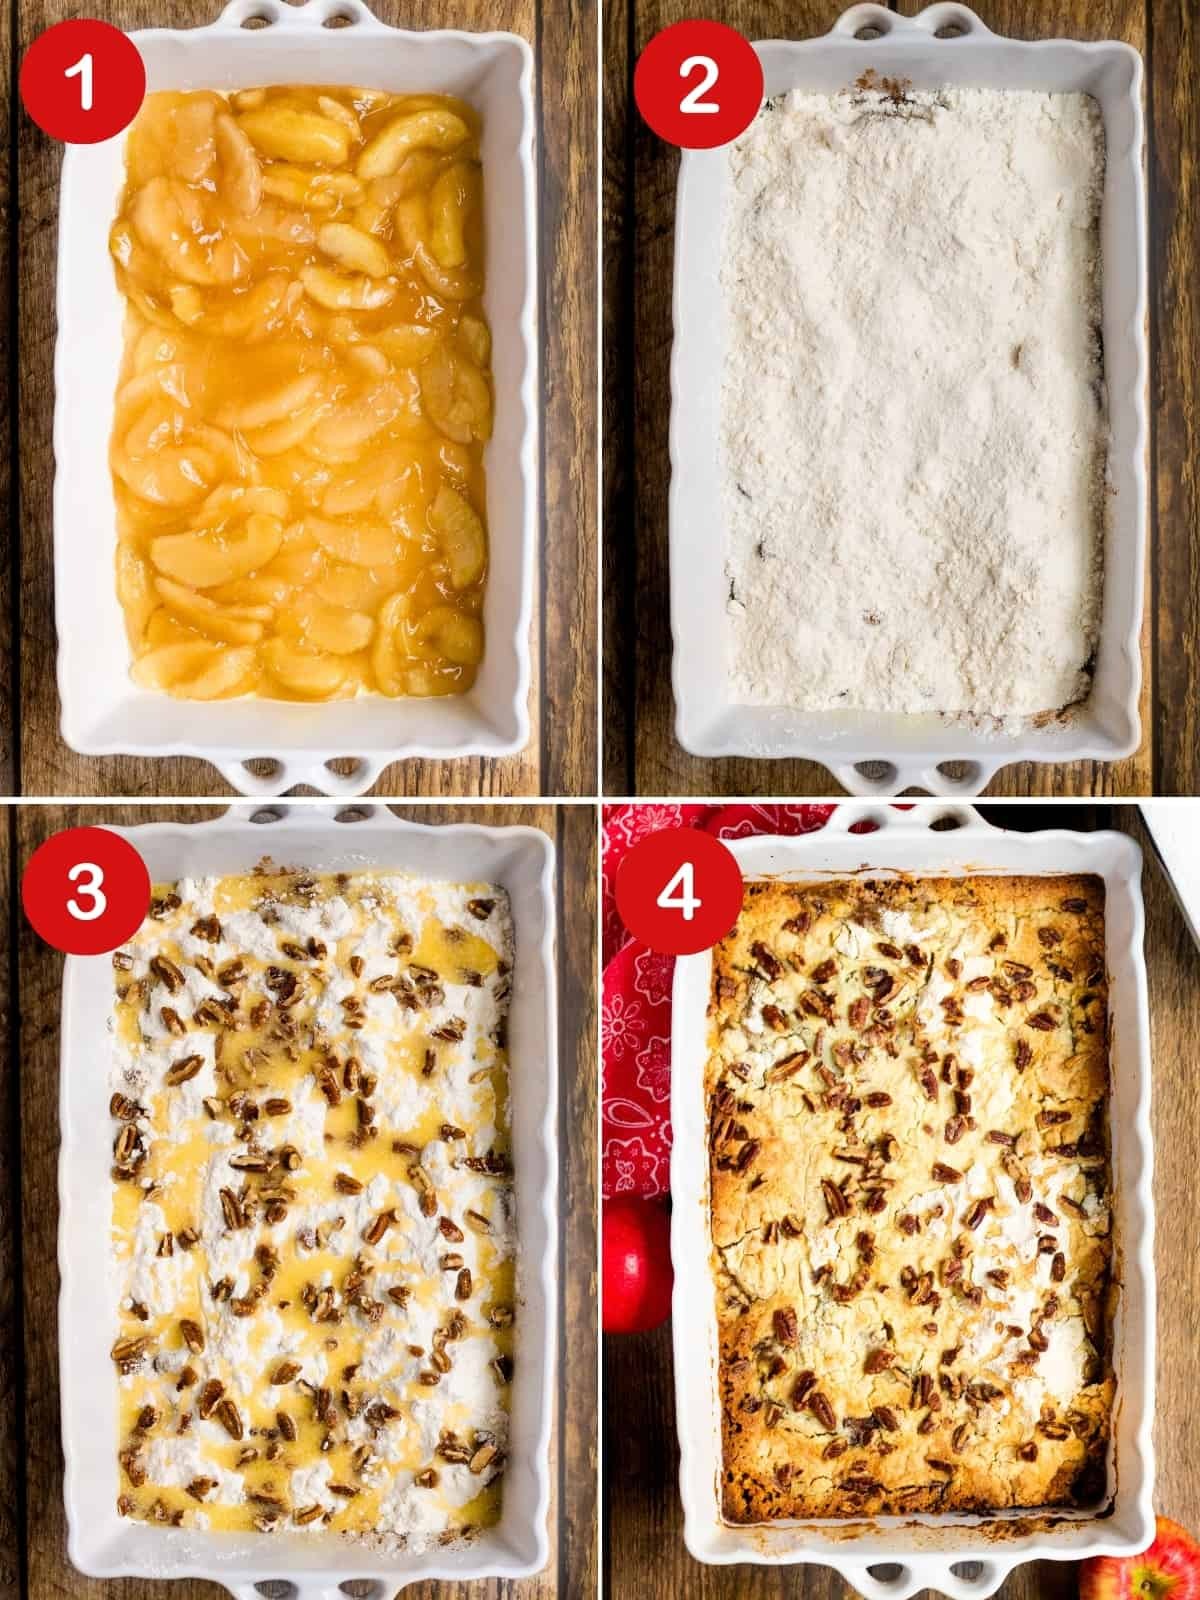 4 image collage: Top left, baking pan with layer of apple pie filling; top right, same pan topped with cake mix; bottom left, same pan but with the addition of pecans and melted butter; bottom right, cake in pan golden brown after baking